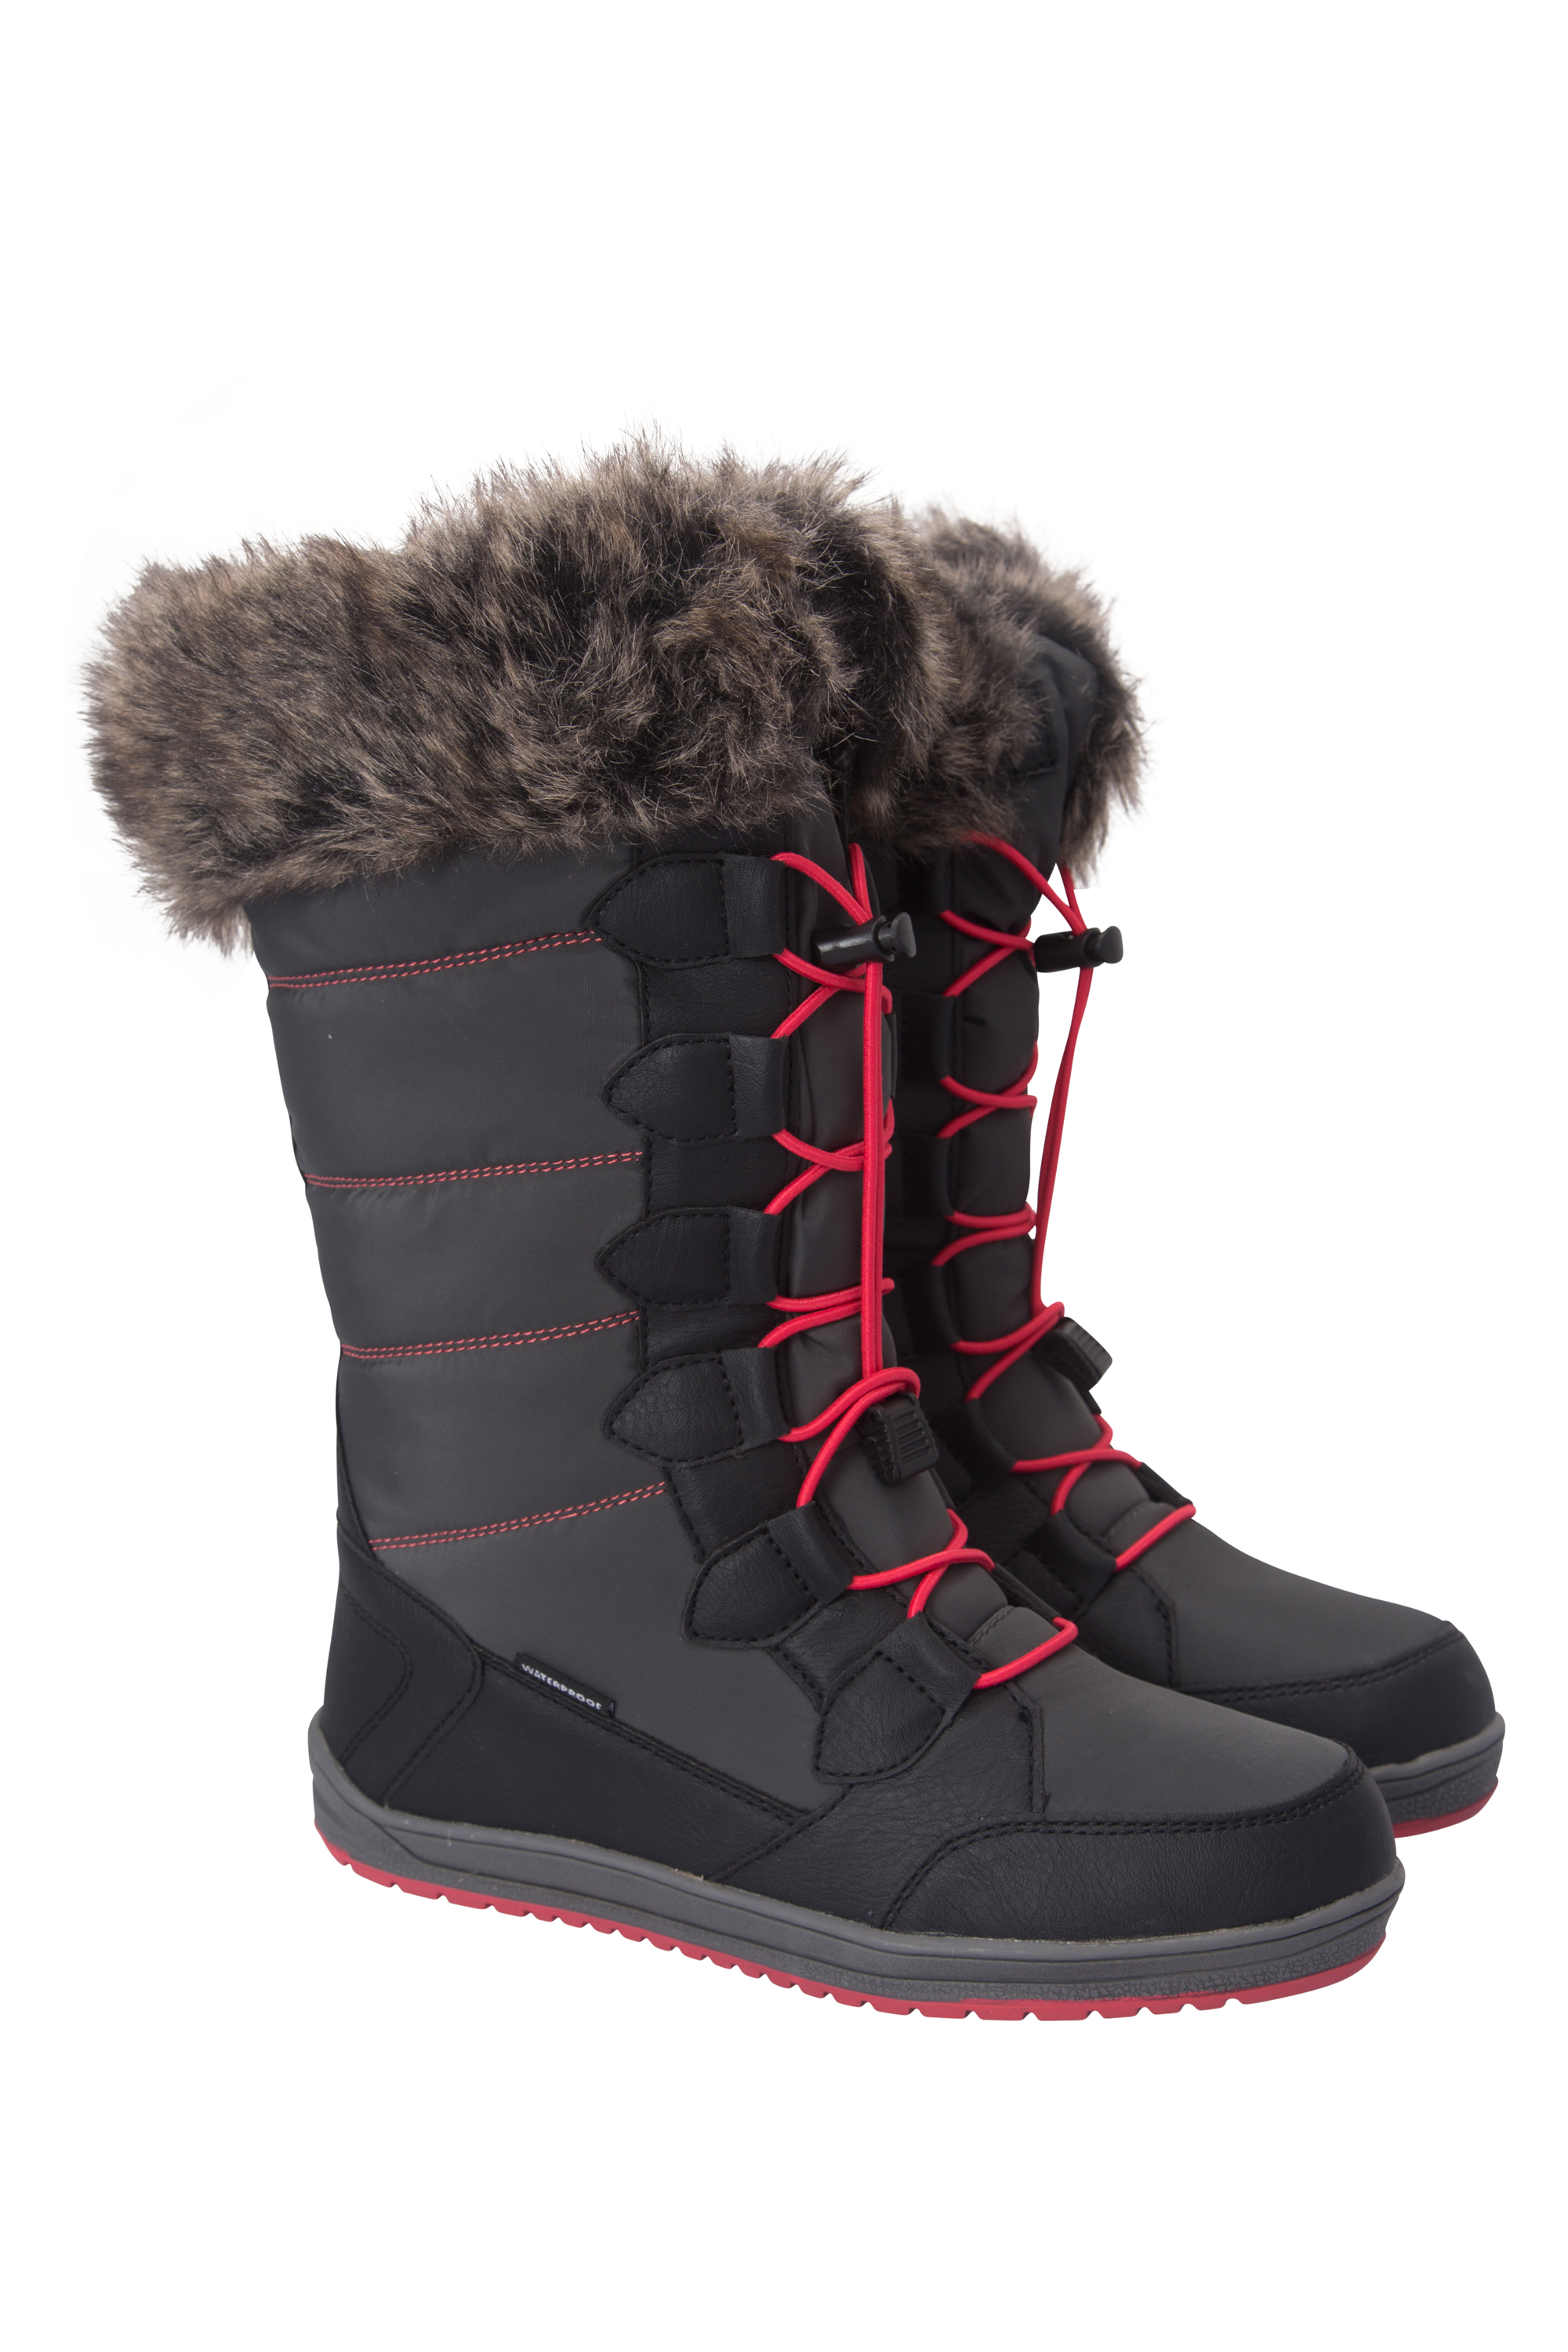 firbank youth snow boots | mountain warehouse us DUIGHFO